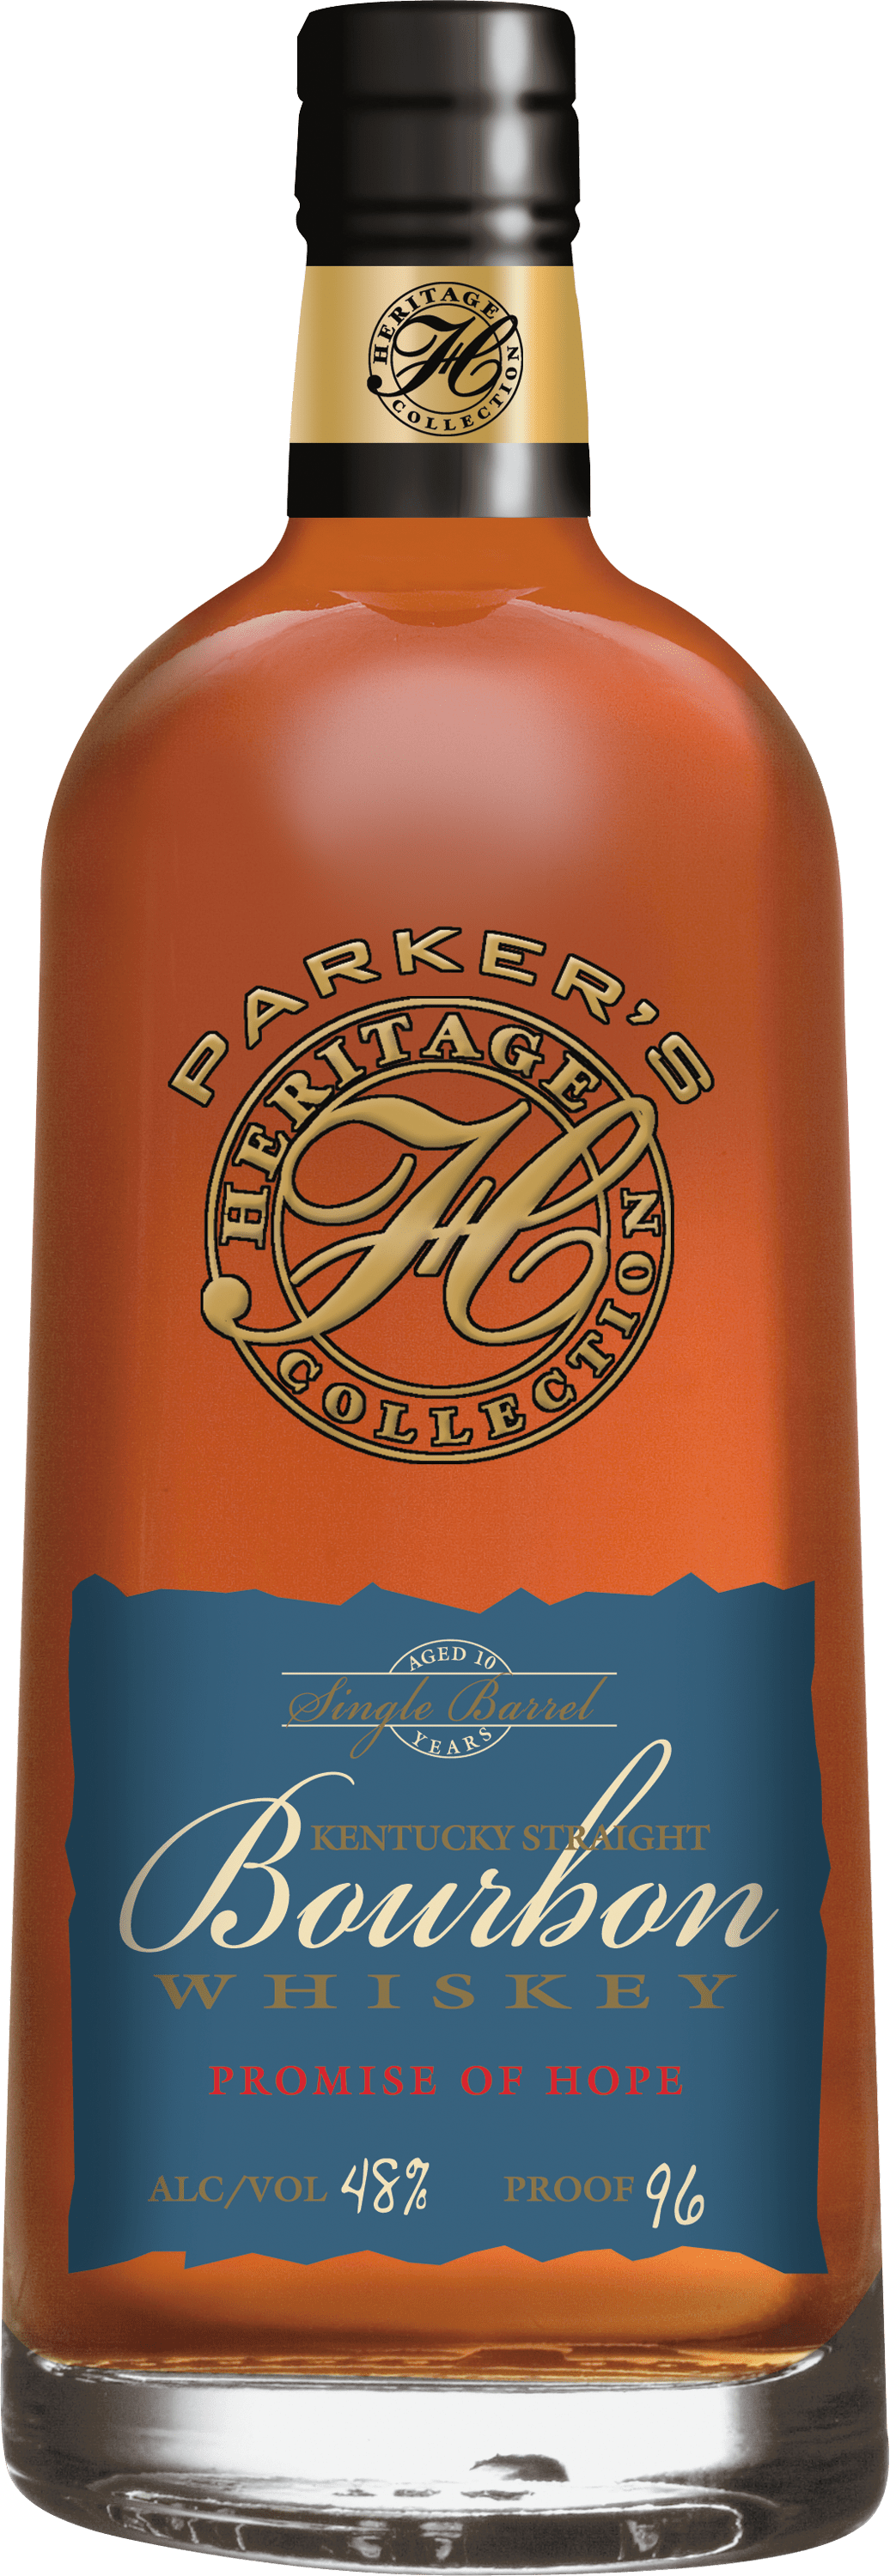 Parker's Heritage Collection Promise of Hope Bourbon (2013)